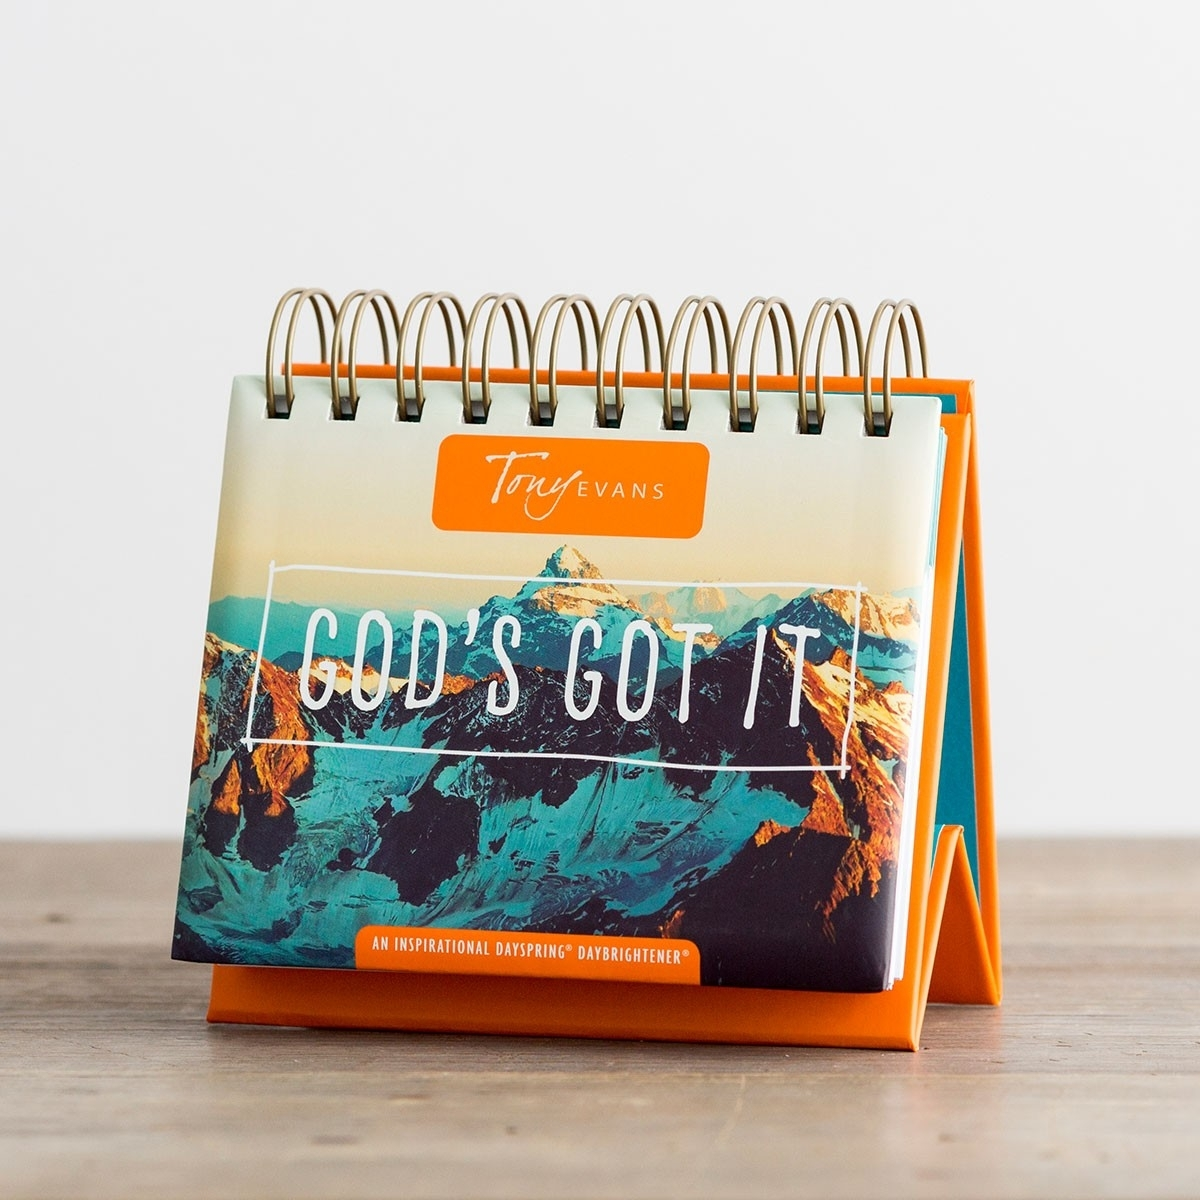 Tony Evans - God's Got It - 365 Day Perpetual Calendar | Dayspring within Add Your Own Picture To A 365 Days Perpetual